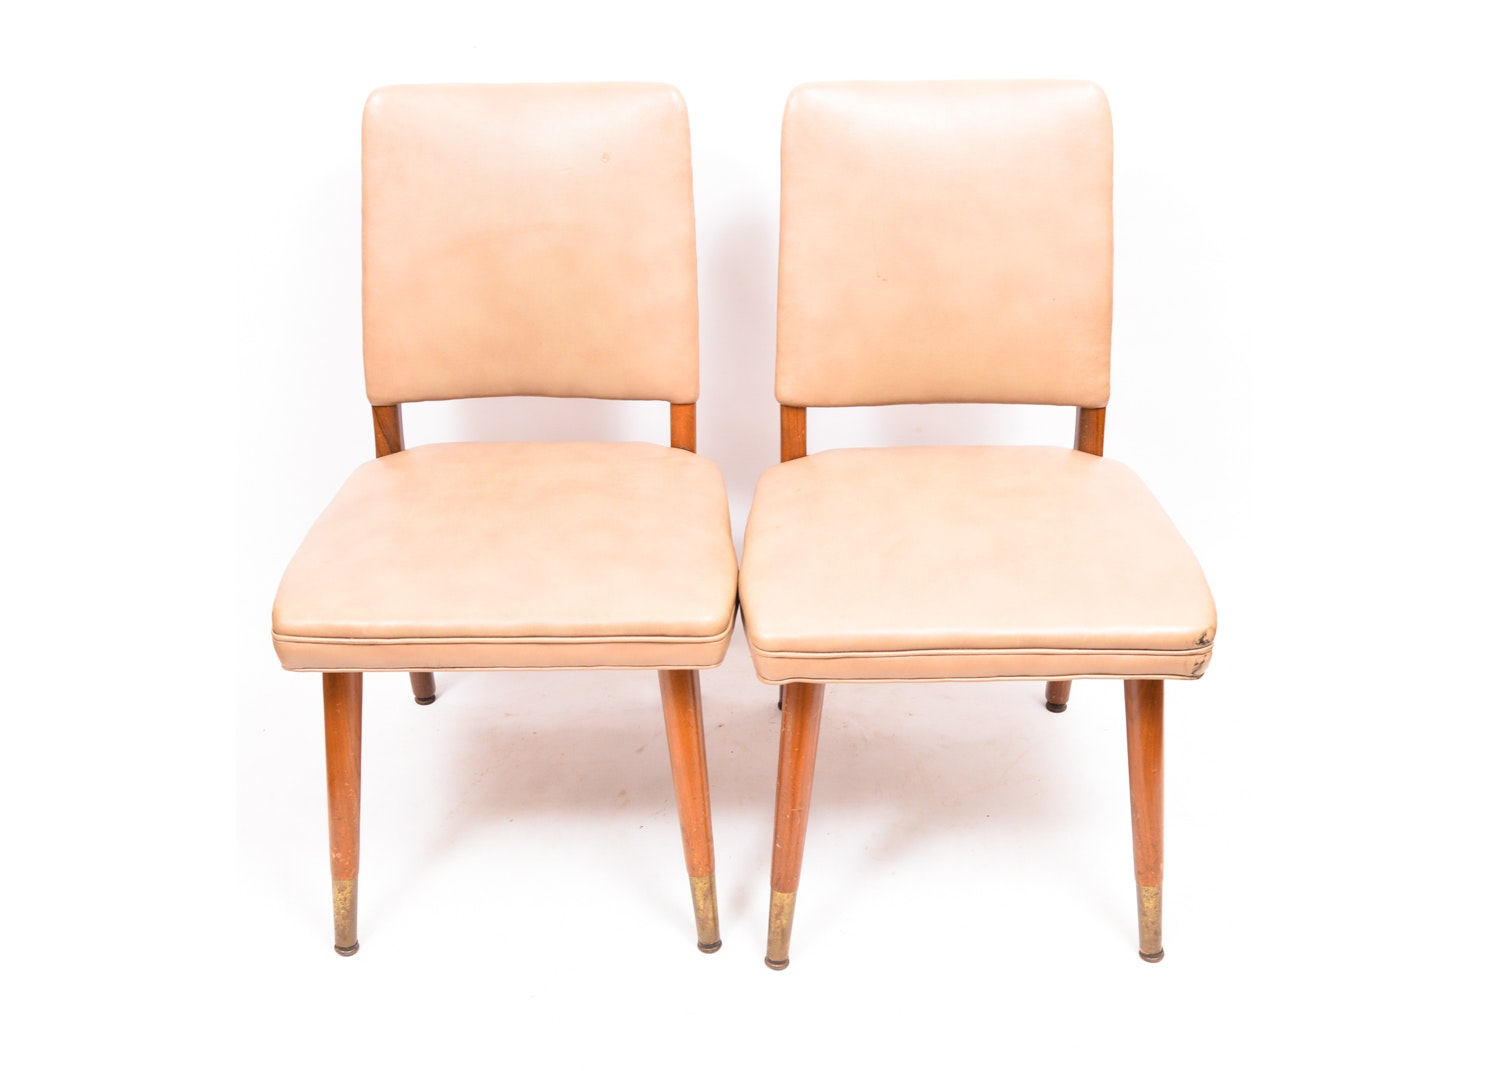 Mid Century Modern Vinyl Upholstered Chairs by B.L. Marble Chair Co.